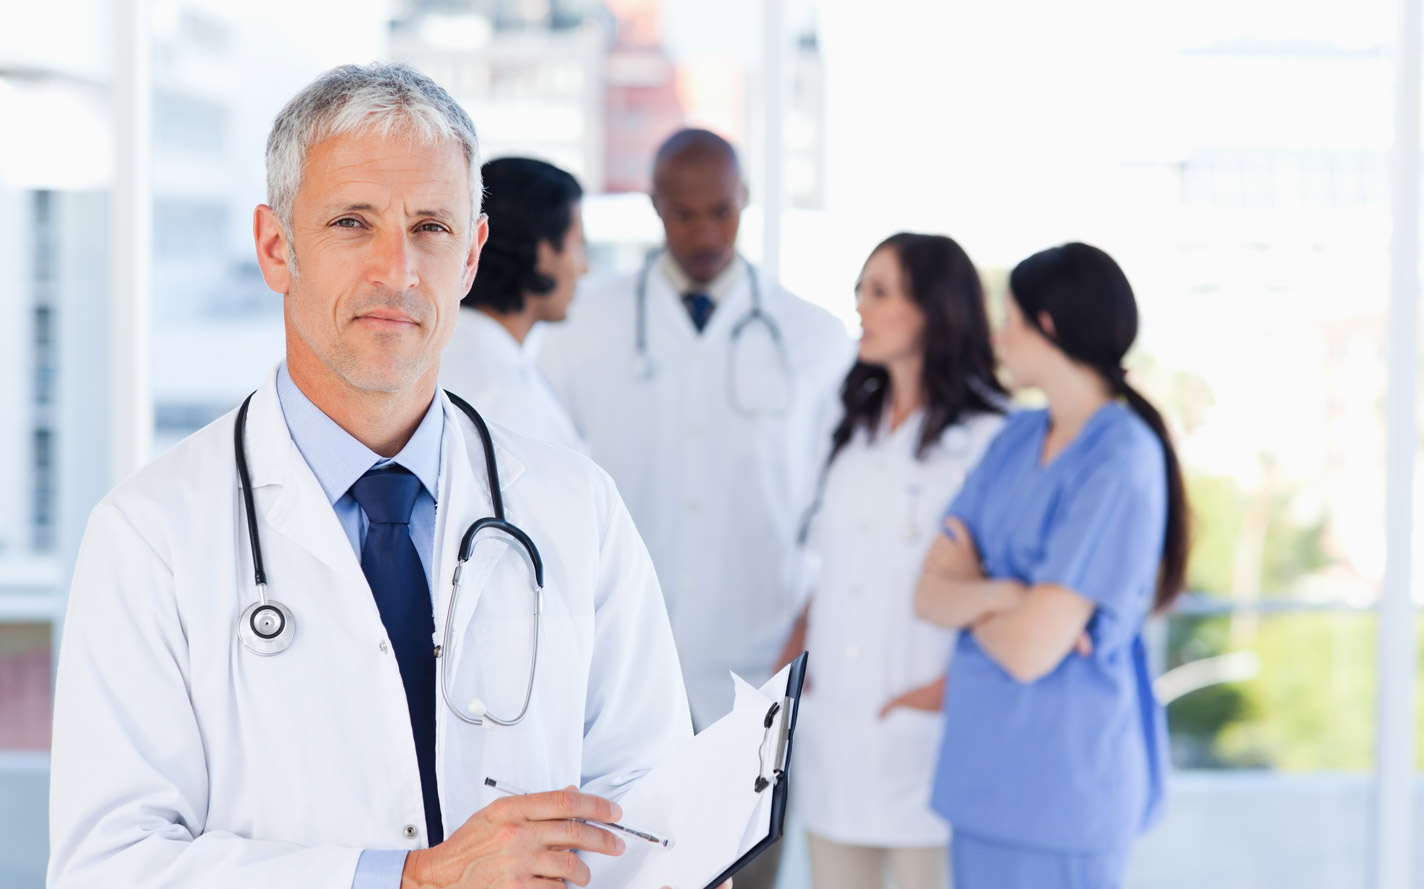 One doctor standing apart from four other doctors discussing information.